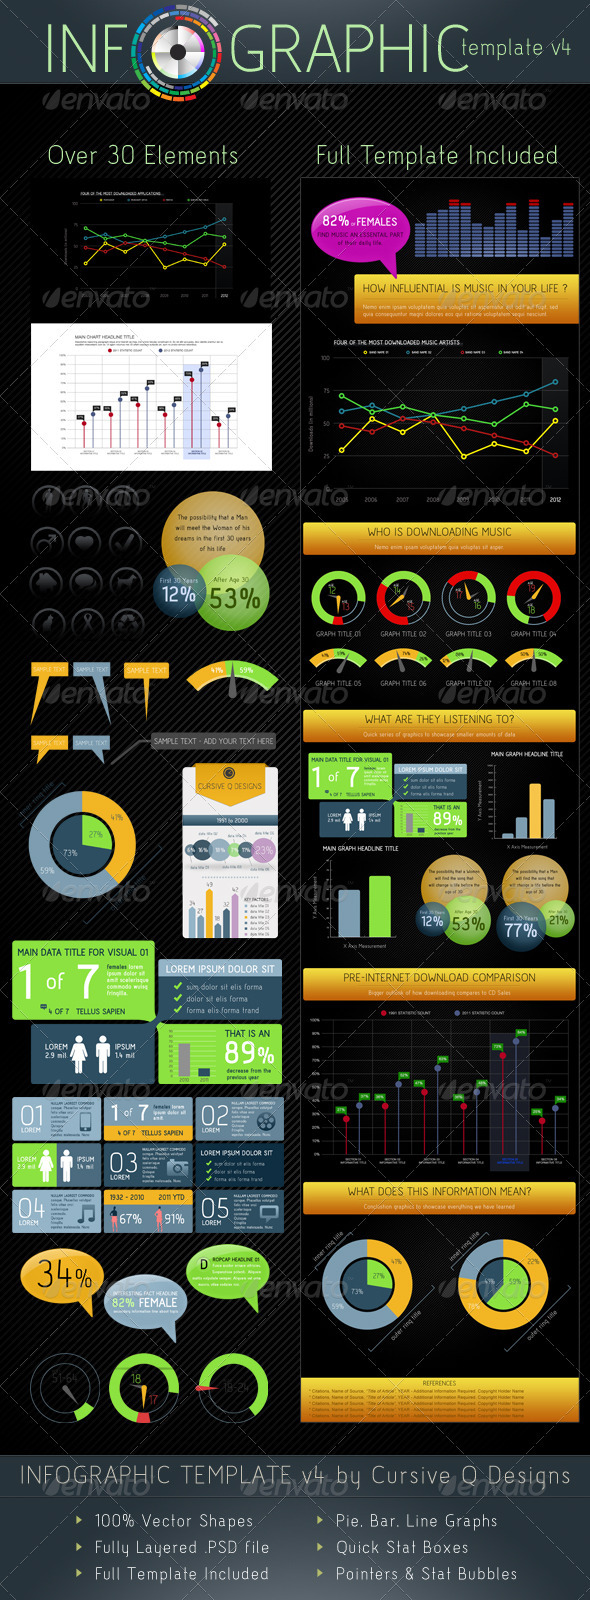 Infographic Template v4 by CursiveQ-Designs